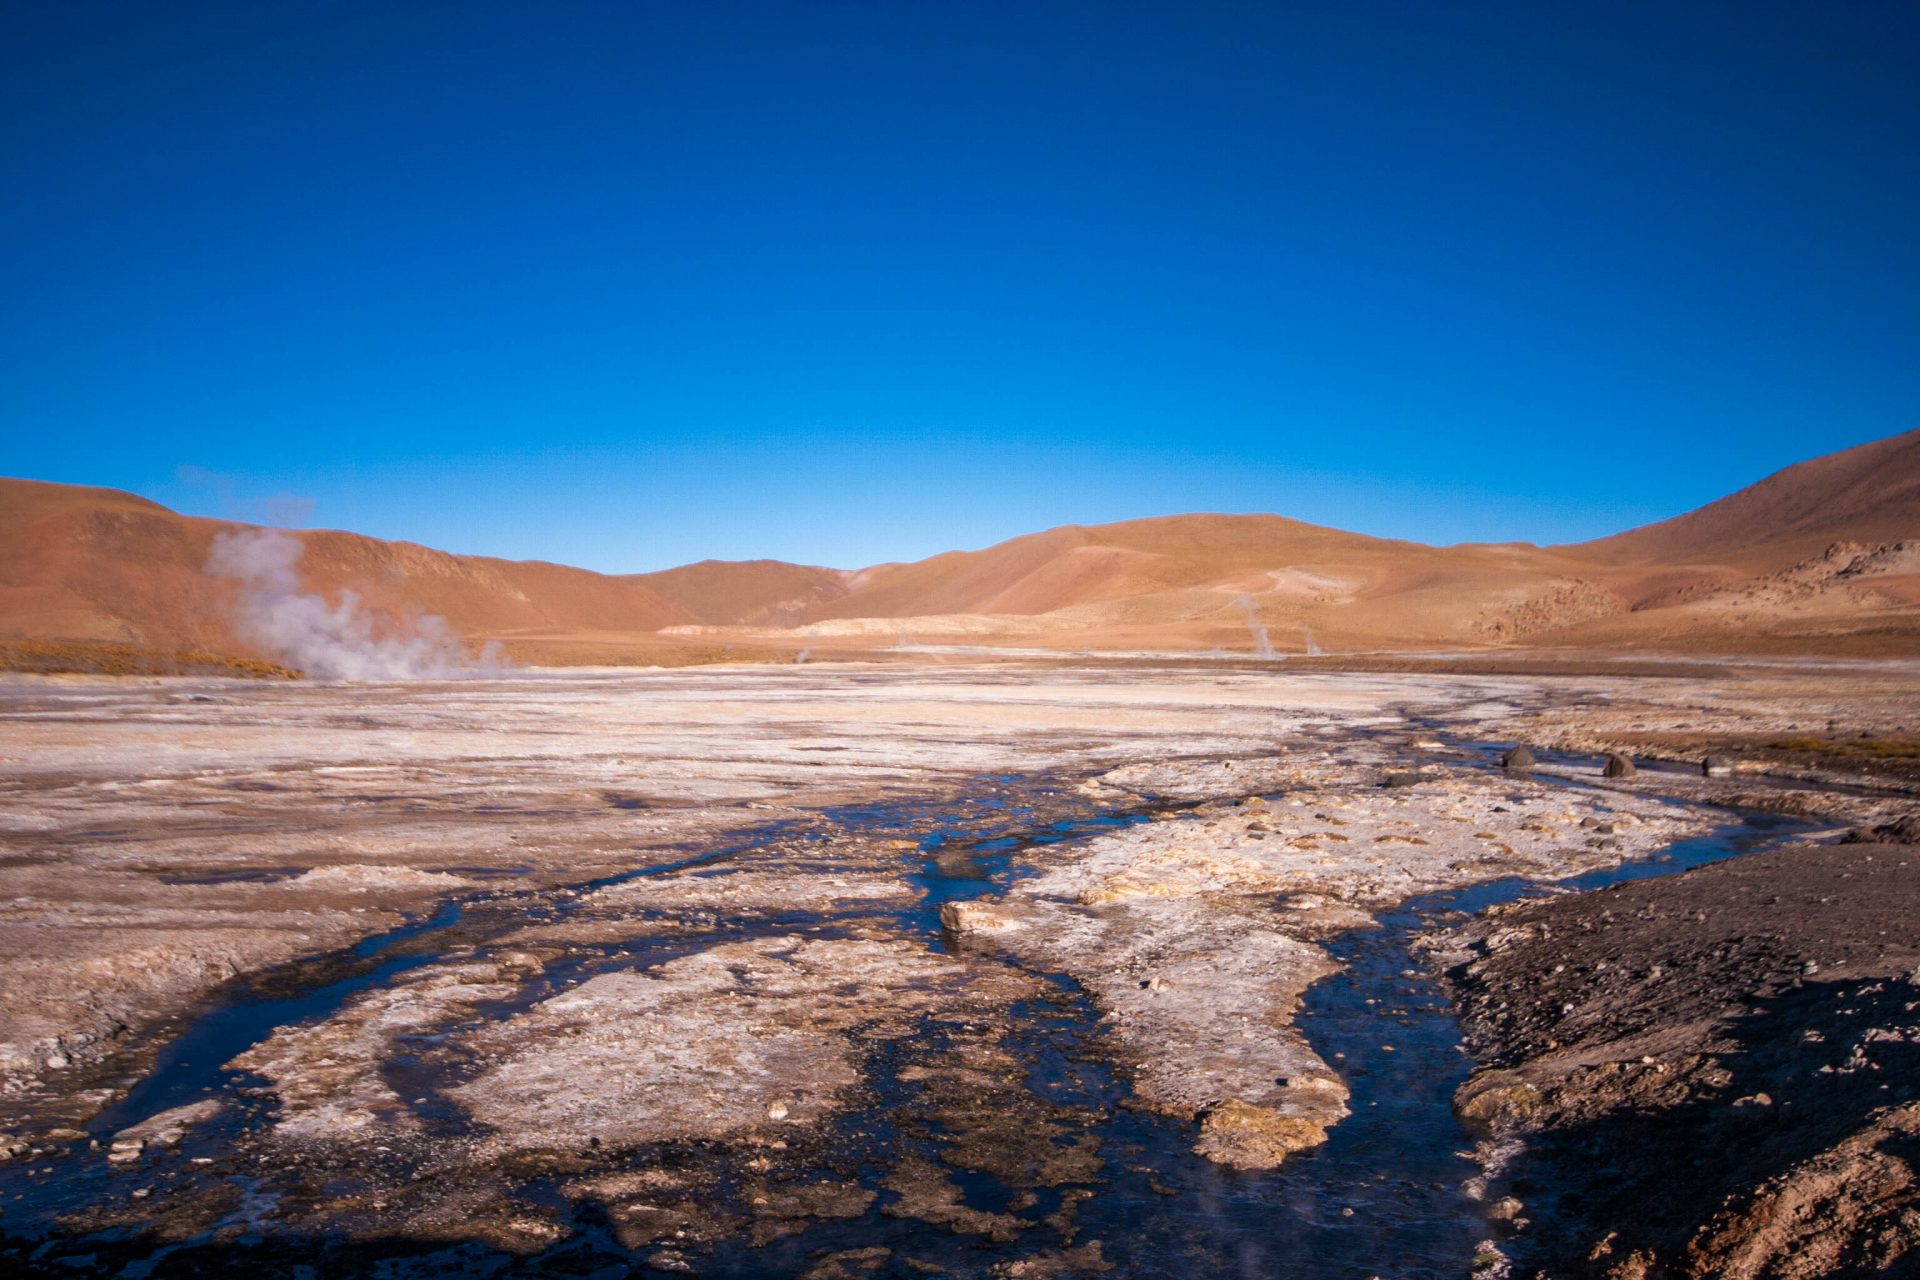 El Tatio Geyser with steam plumes in the distance.